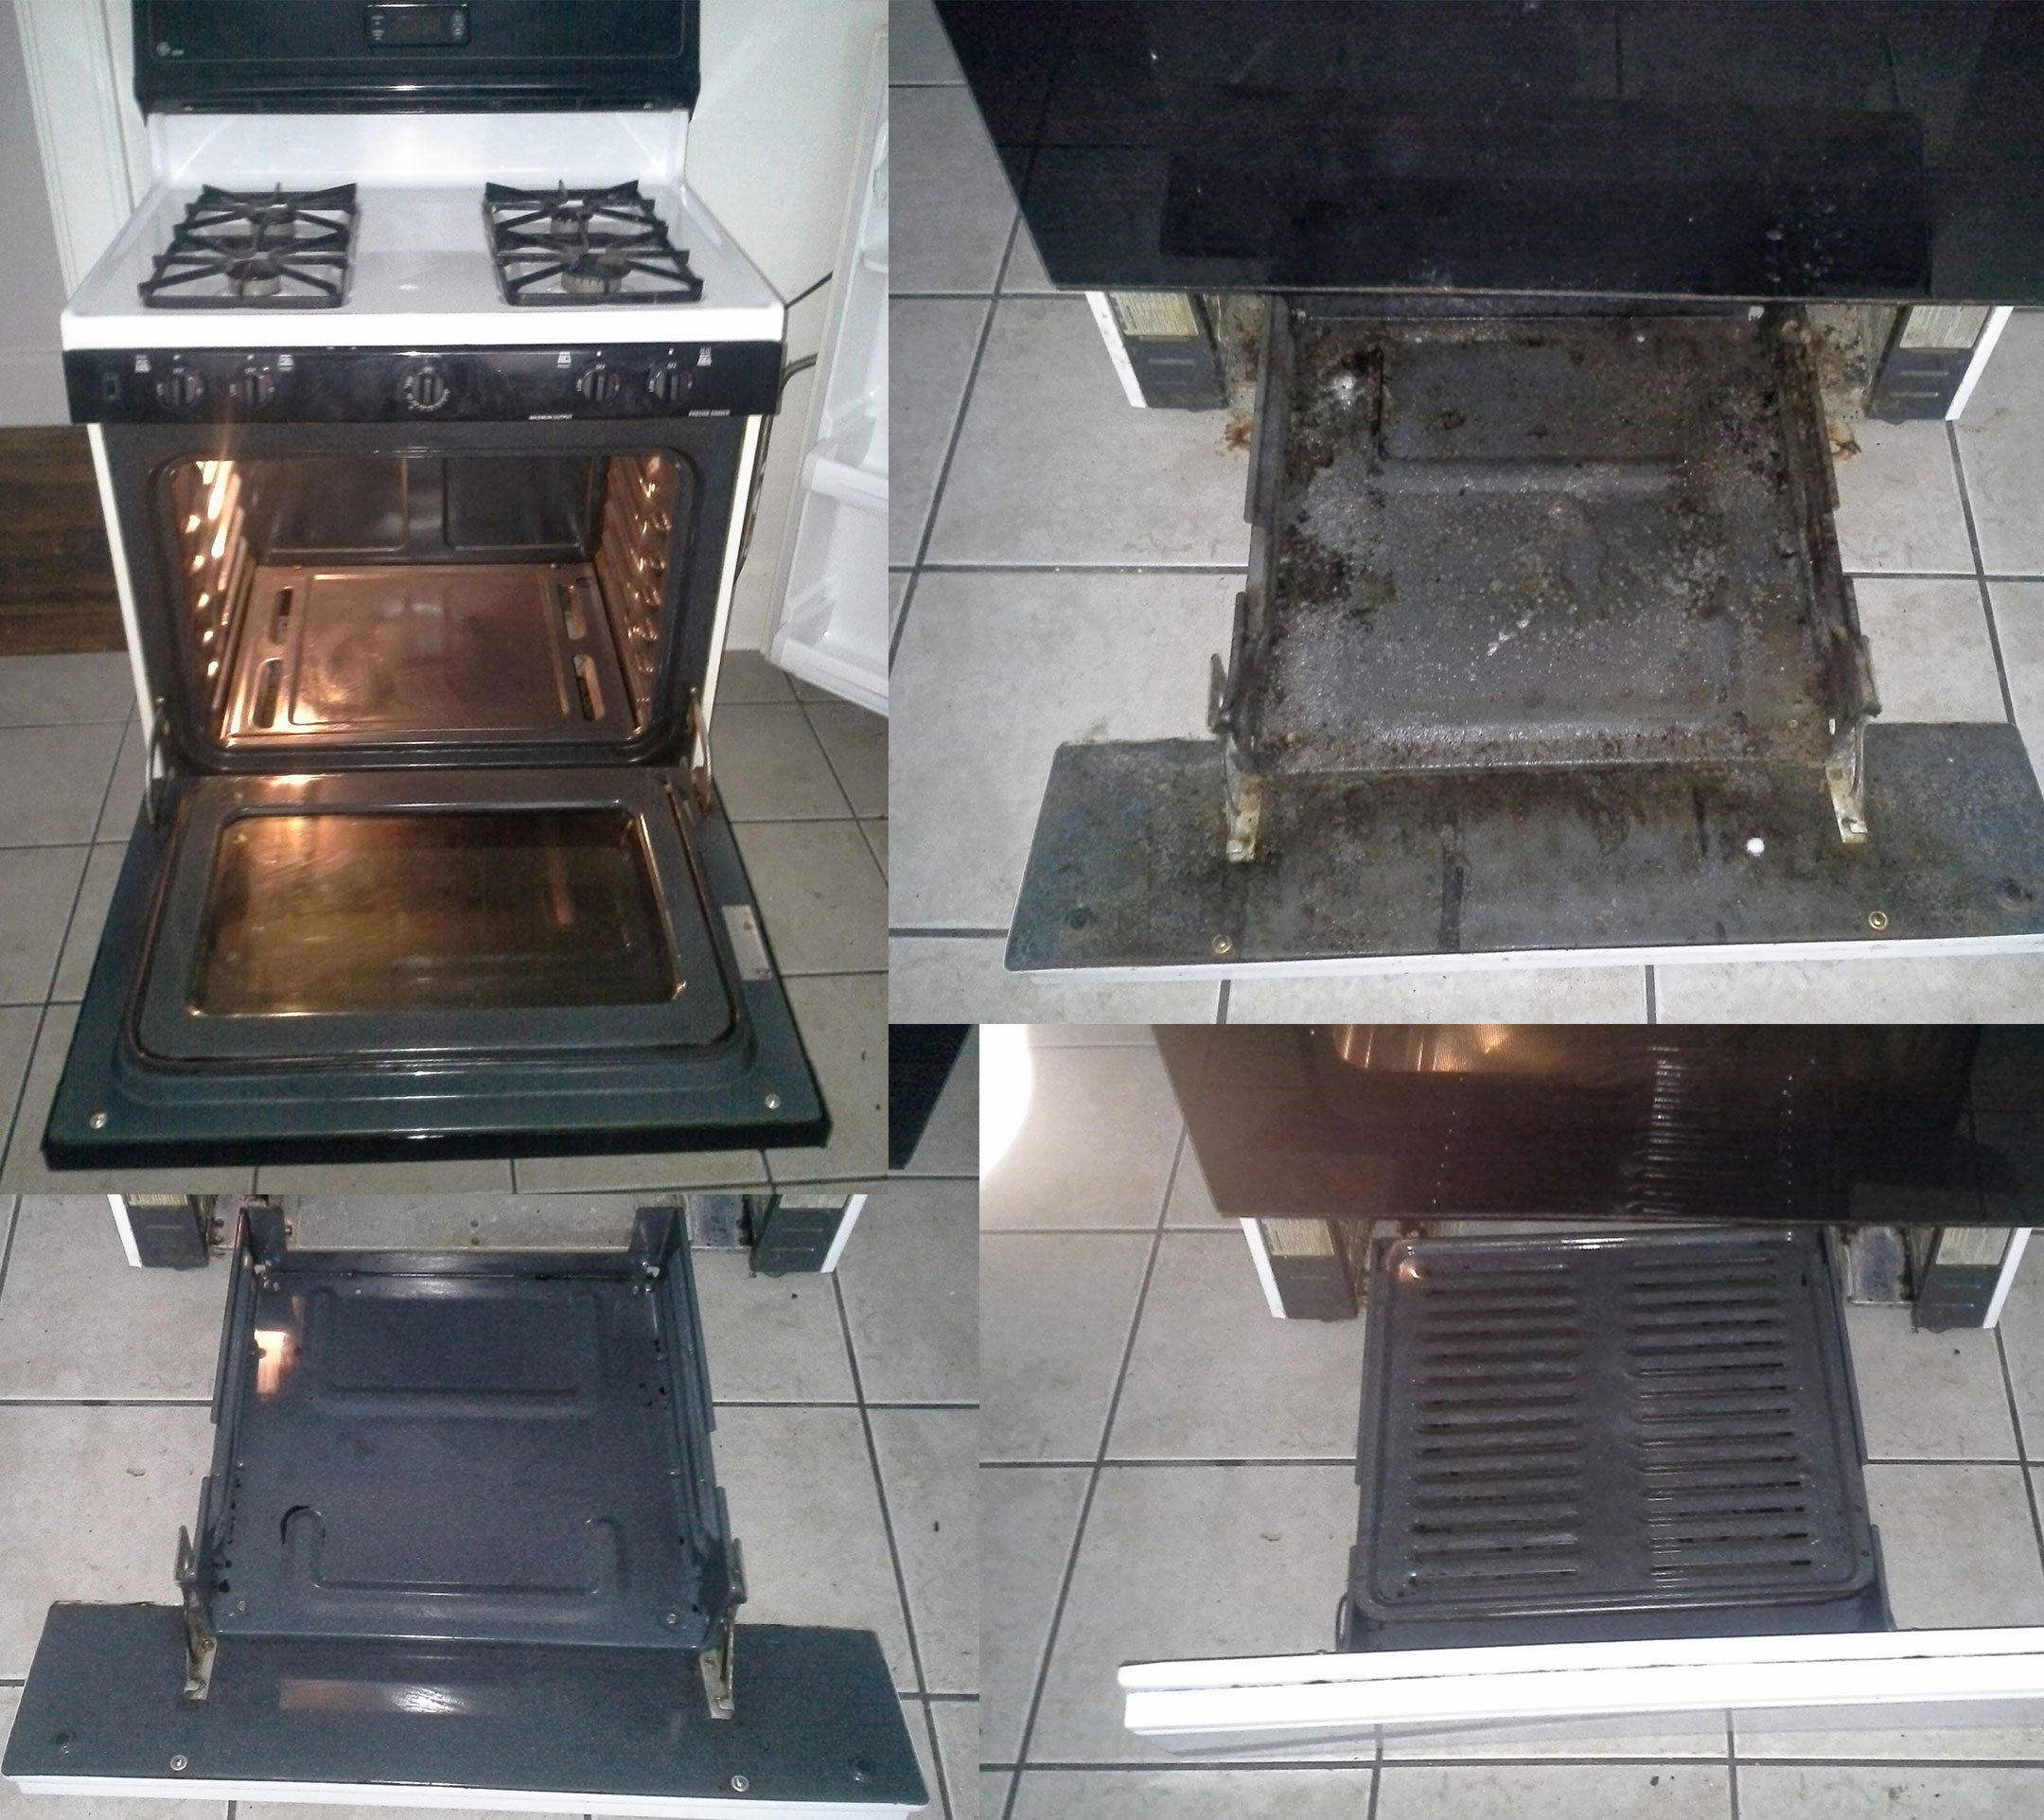 h2H-Oven-Combined